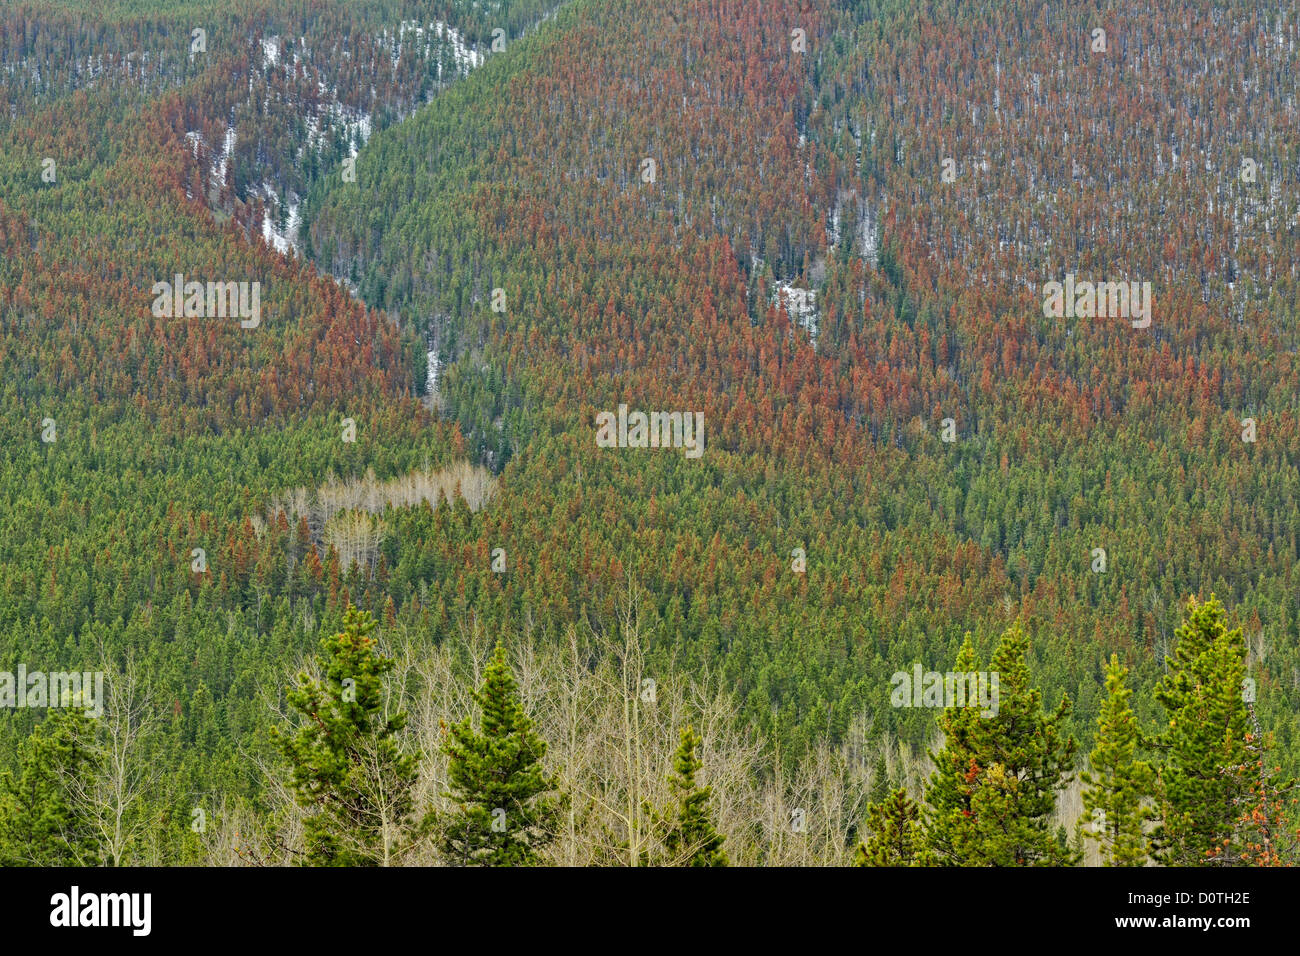 Mountain pine beetle damage- pine trees reddened and killed by insects, Kananaskis country, Alberta, Canada - Stock Image